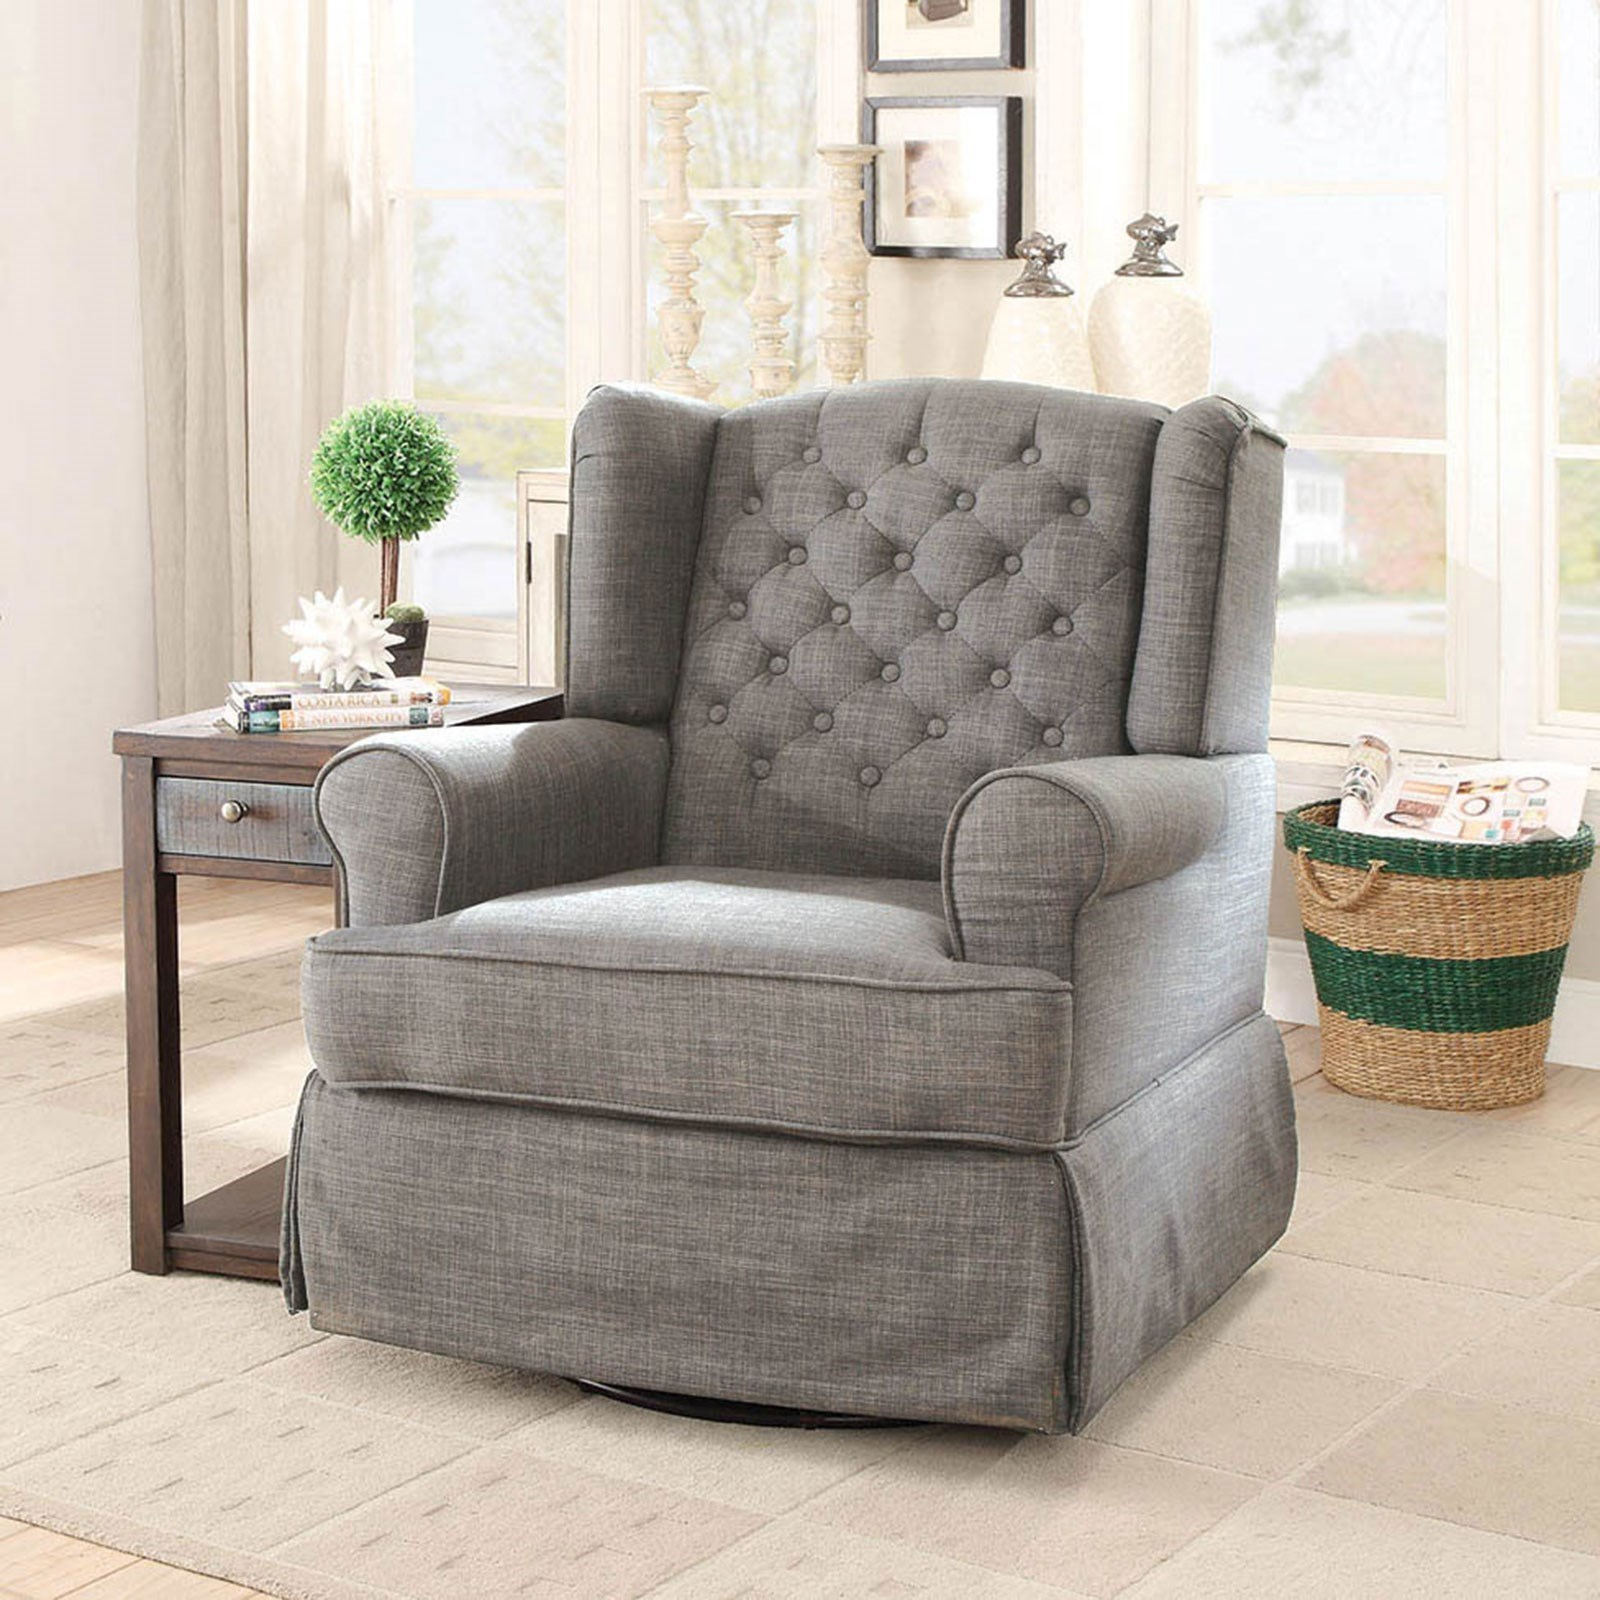 Admirable Paloma Transitional Rocking Chair With Winged Back By Furniture Of America At Rooms For Less Download Free Architecture Designs Scobabritishbridgeorg